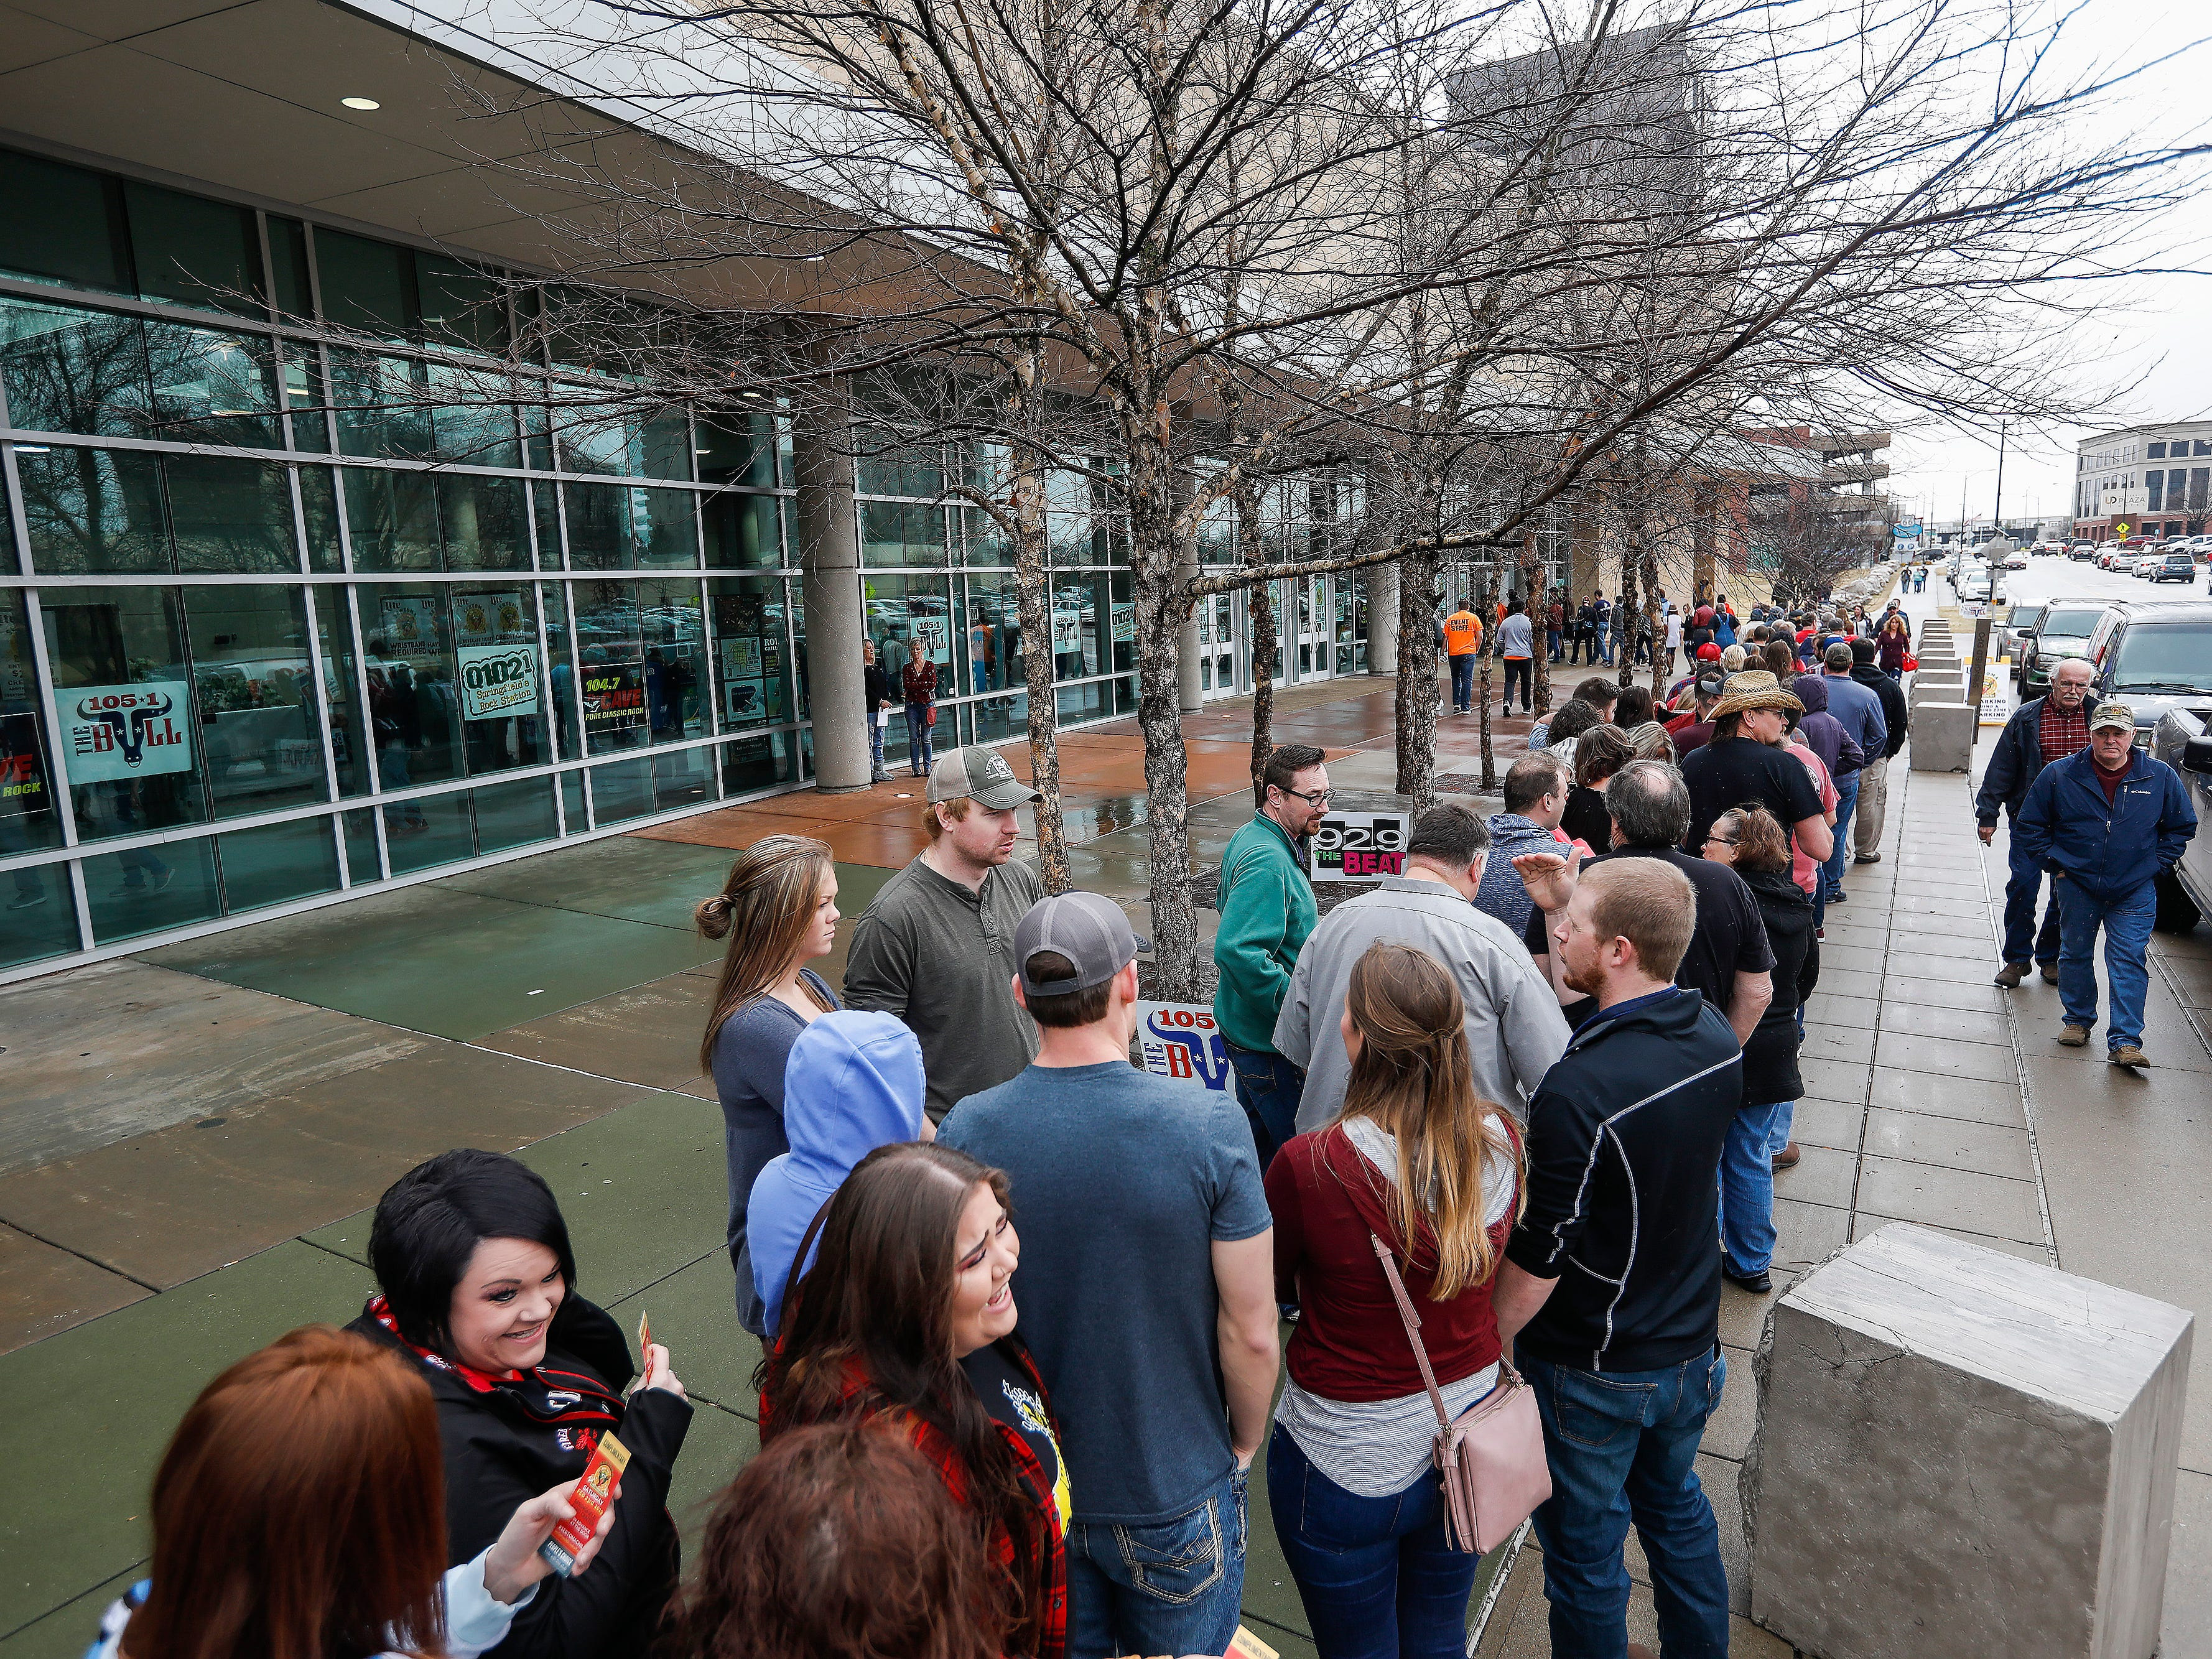 A long line of people wait to get into the 2019 Sertoma Chili Cook-Off at the Springfield Expo Center on Saturday, Feb. 23, 2019.